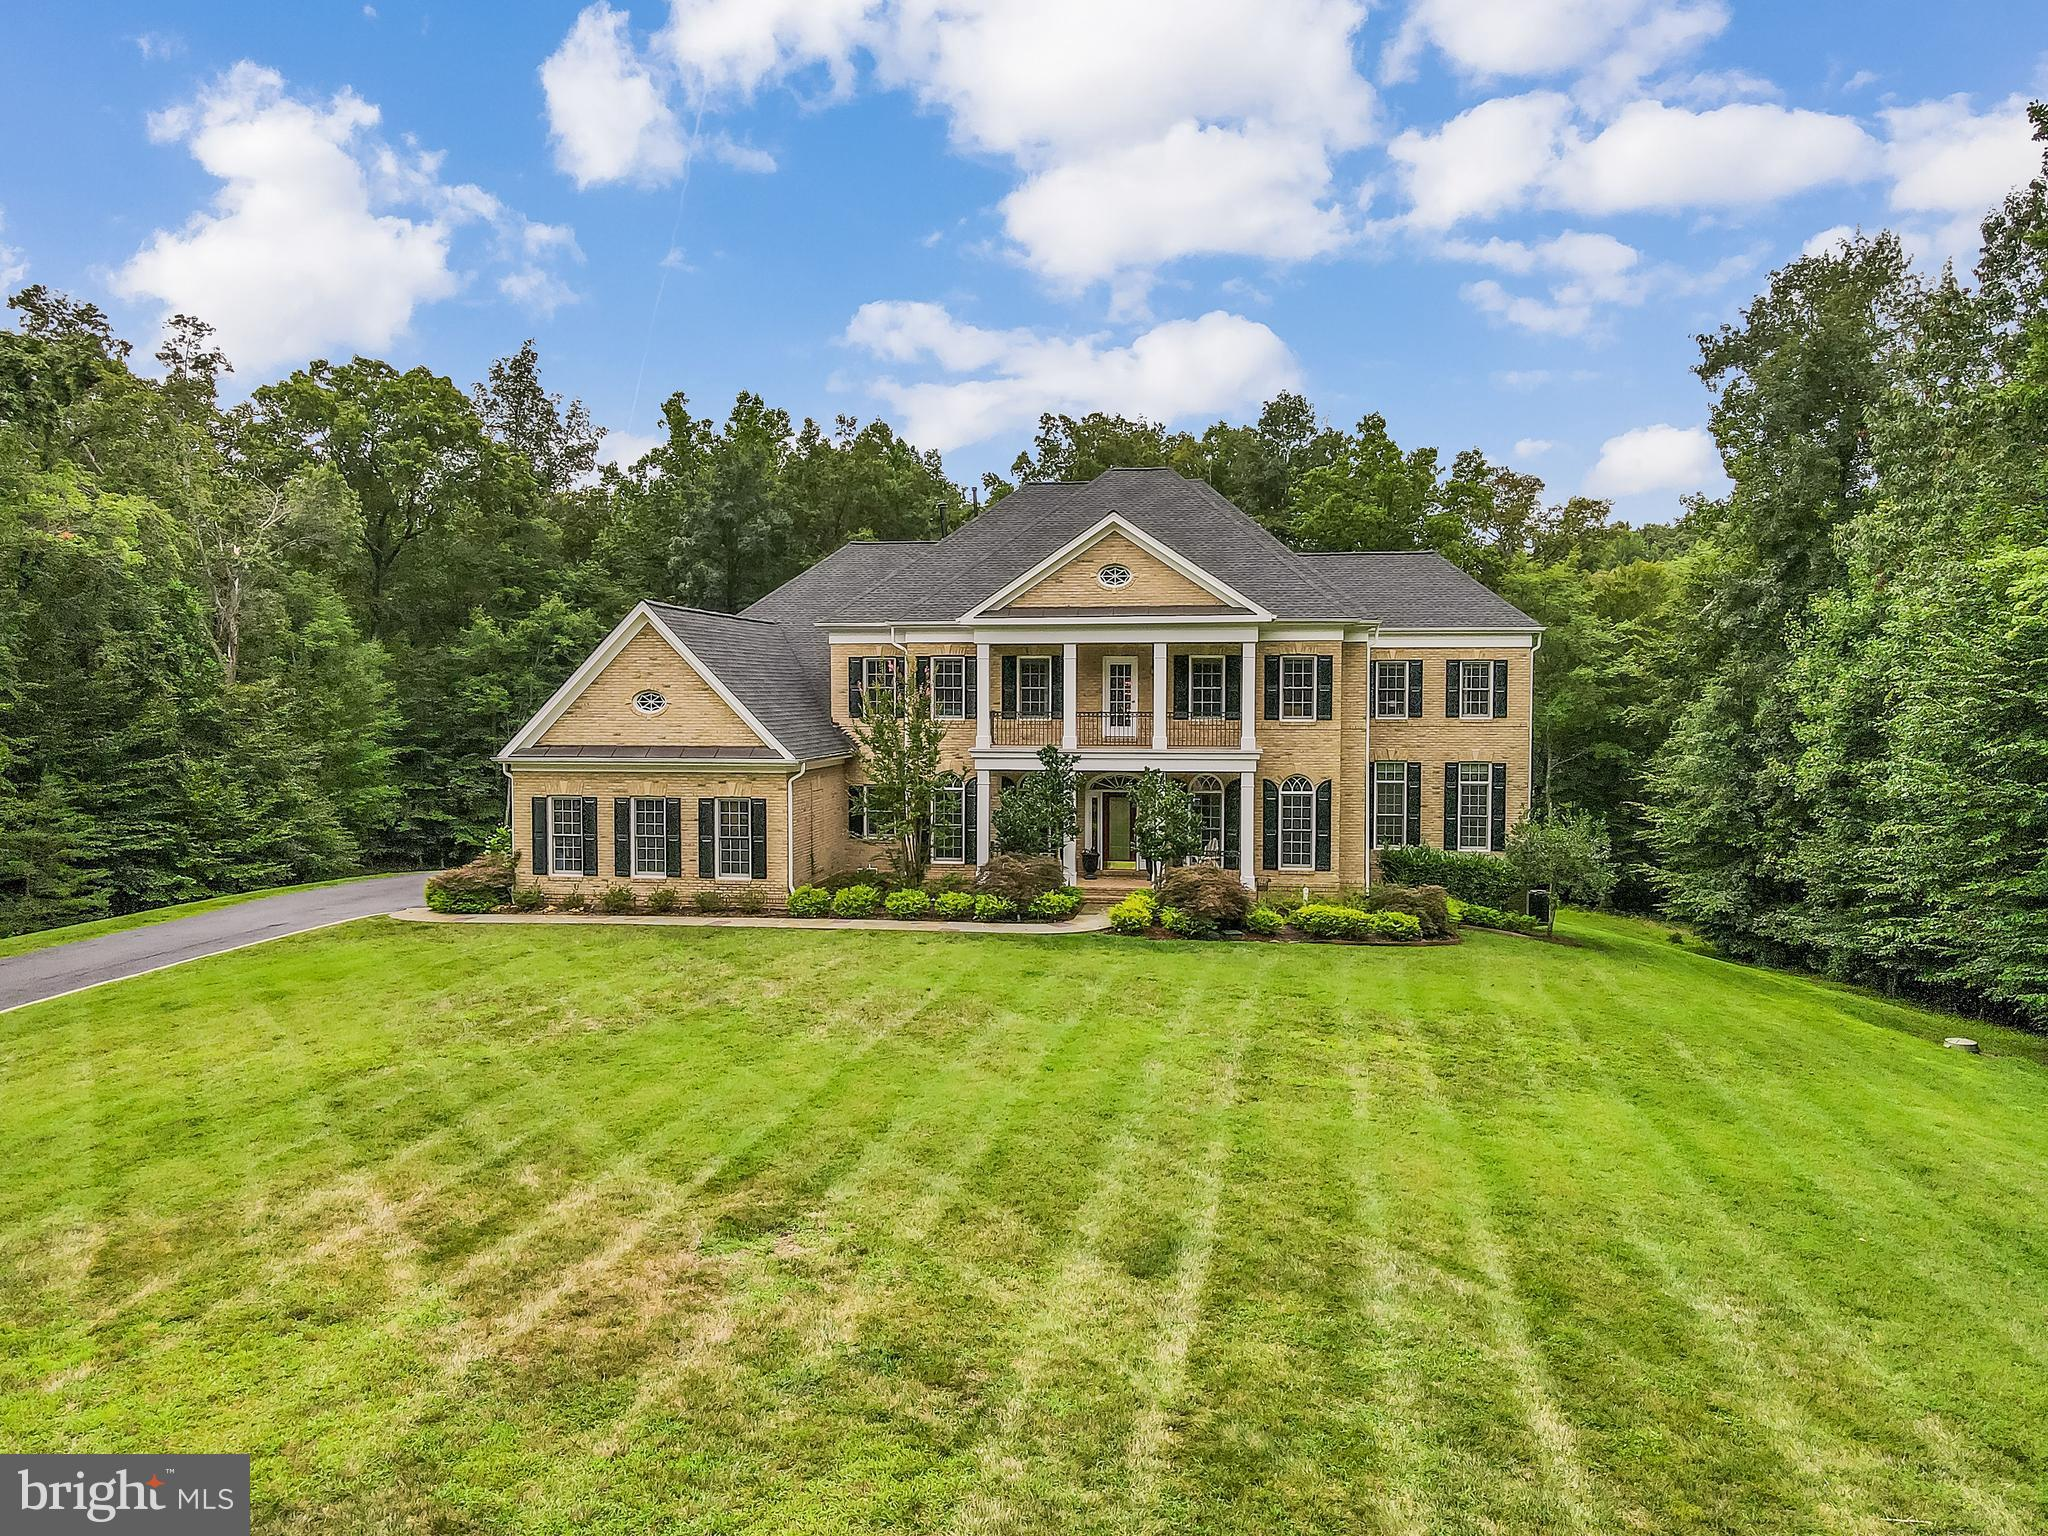 Your Dream Awaits! Stunning 8 bedroom in gated section of River Fallls, home to Old Hickory Golf Cou